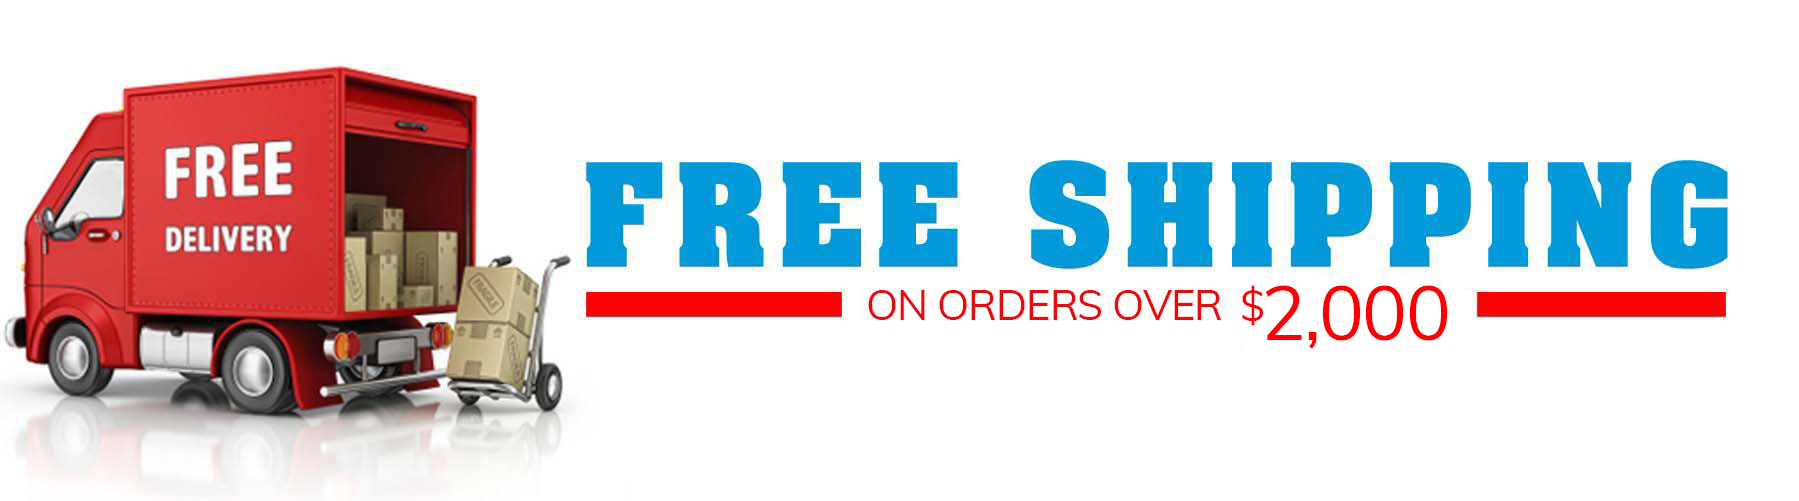 Free Shipping Over $2,000